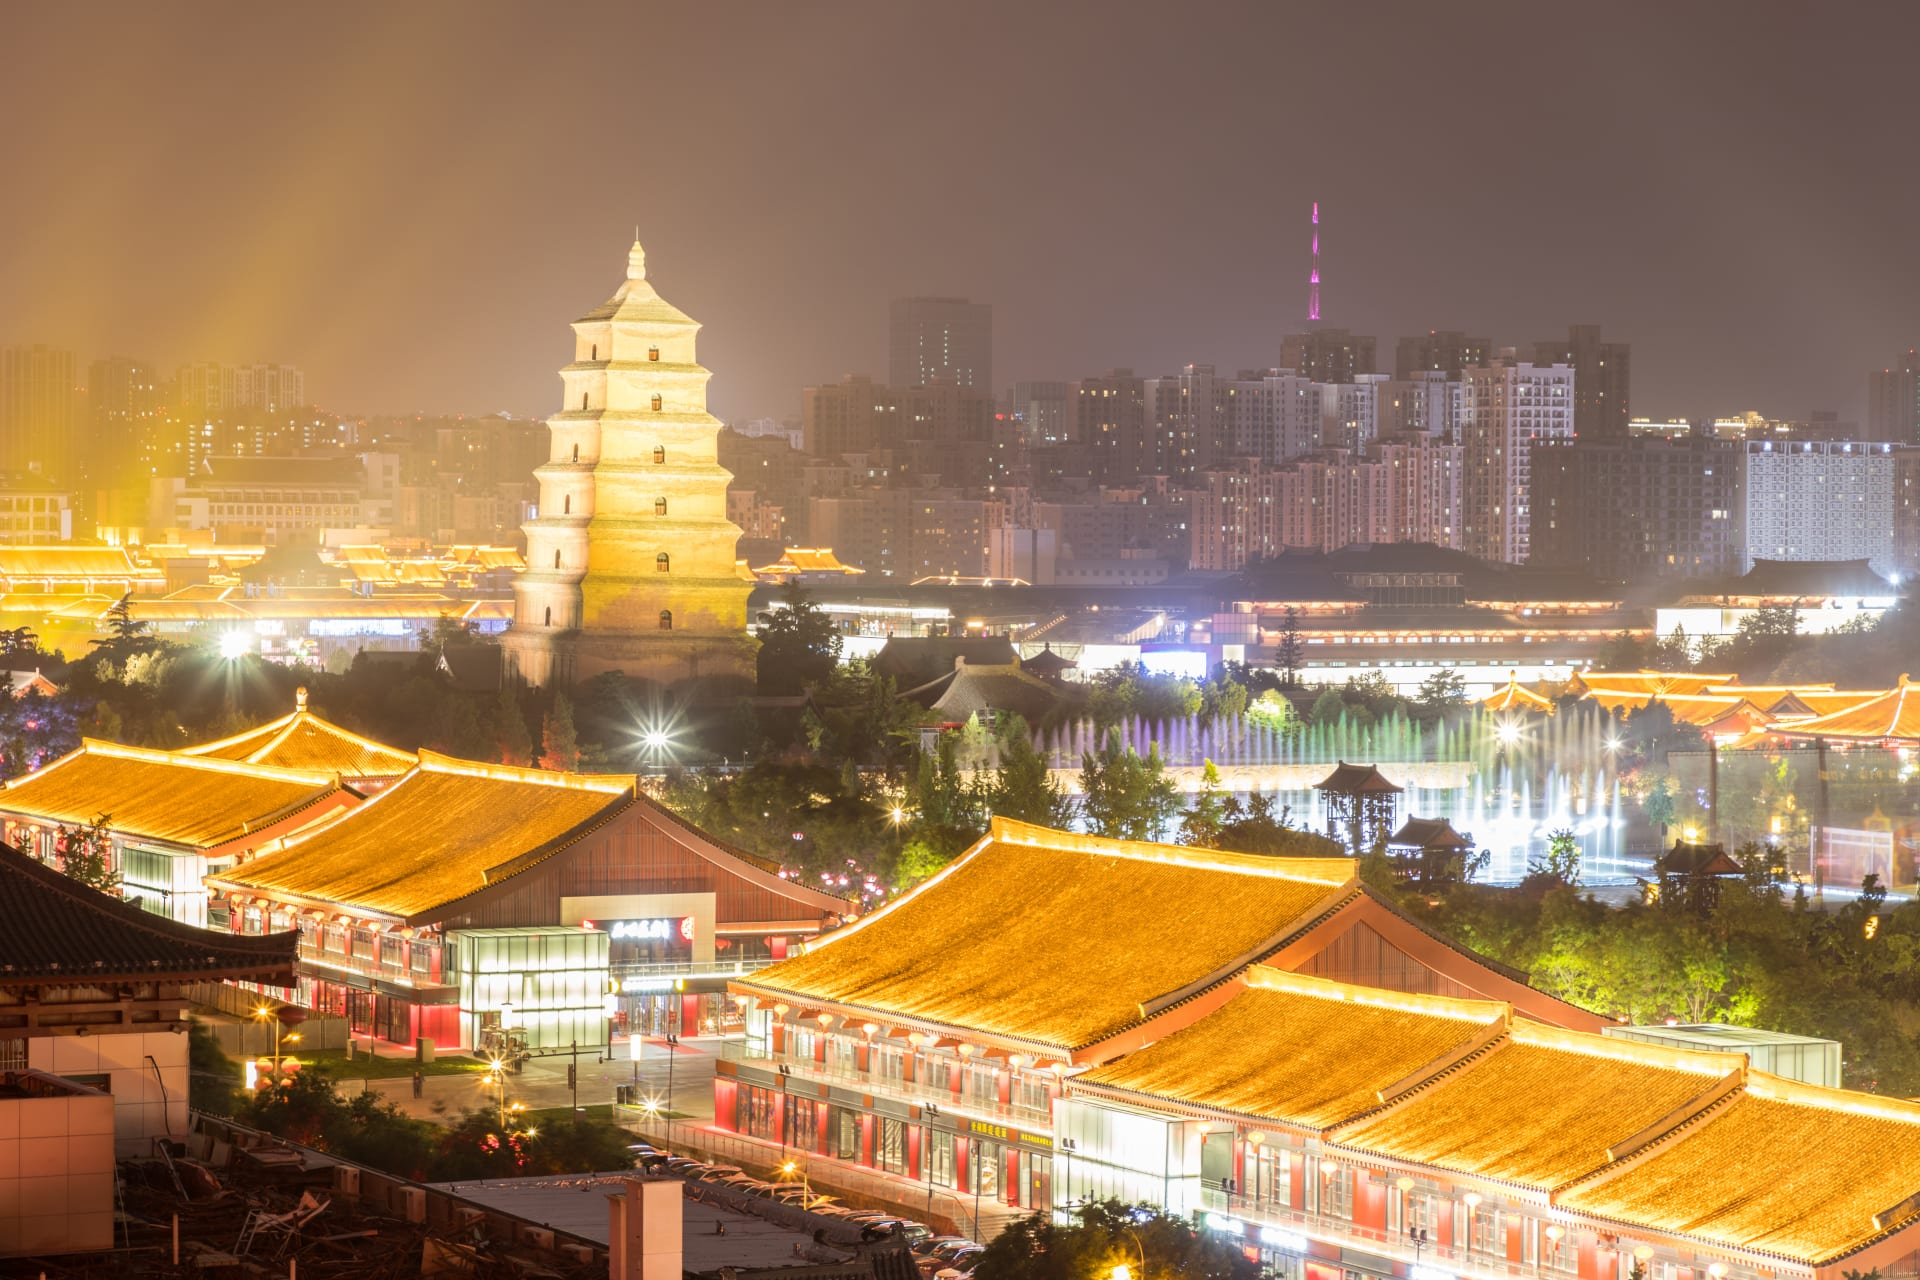 Xi'an - Xi'an Nights at Datang Sleepless City: Go Back In Time to Tang Dynasty